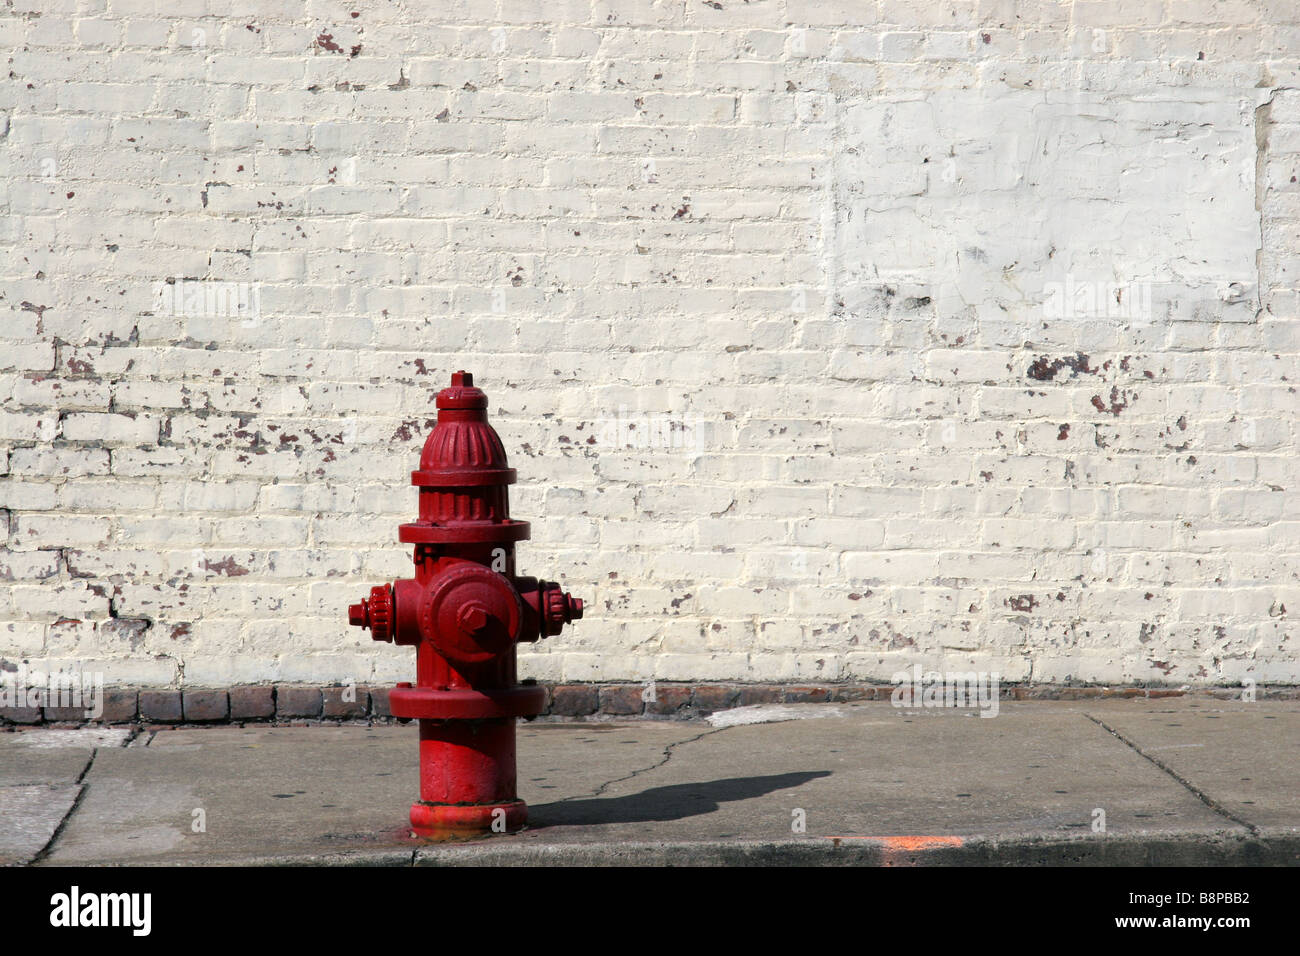 Red American fire hydrant and white brick wall - Stock Image